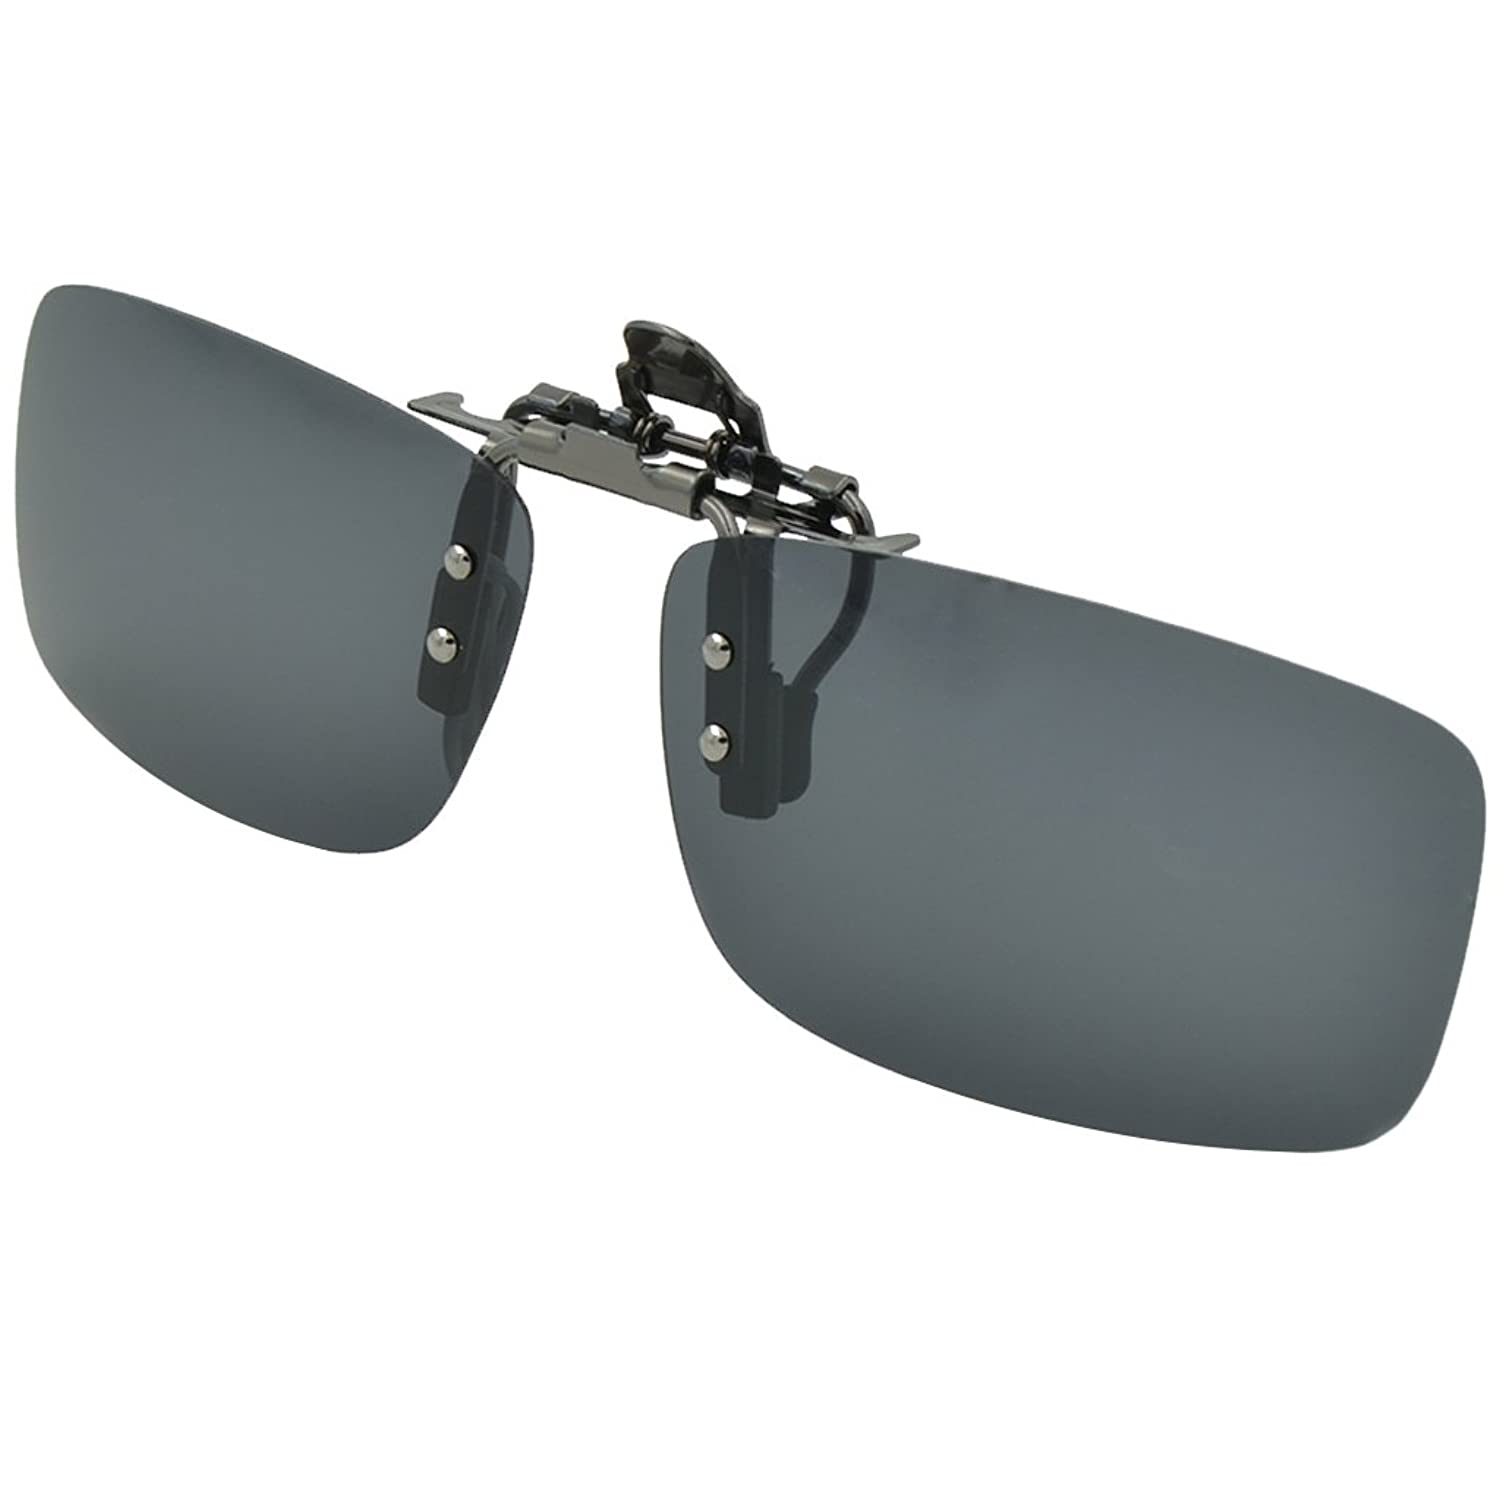 Amazon.com: Besgoods Polarized Clip-on Flip up Metal Clip Sunglasses ...